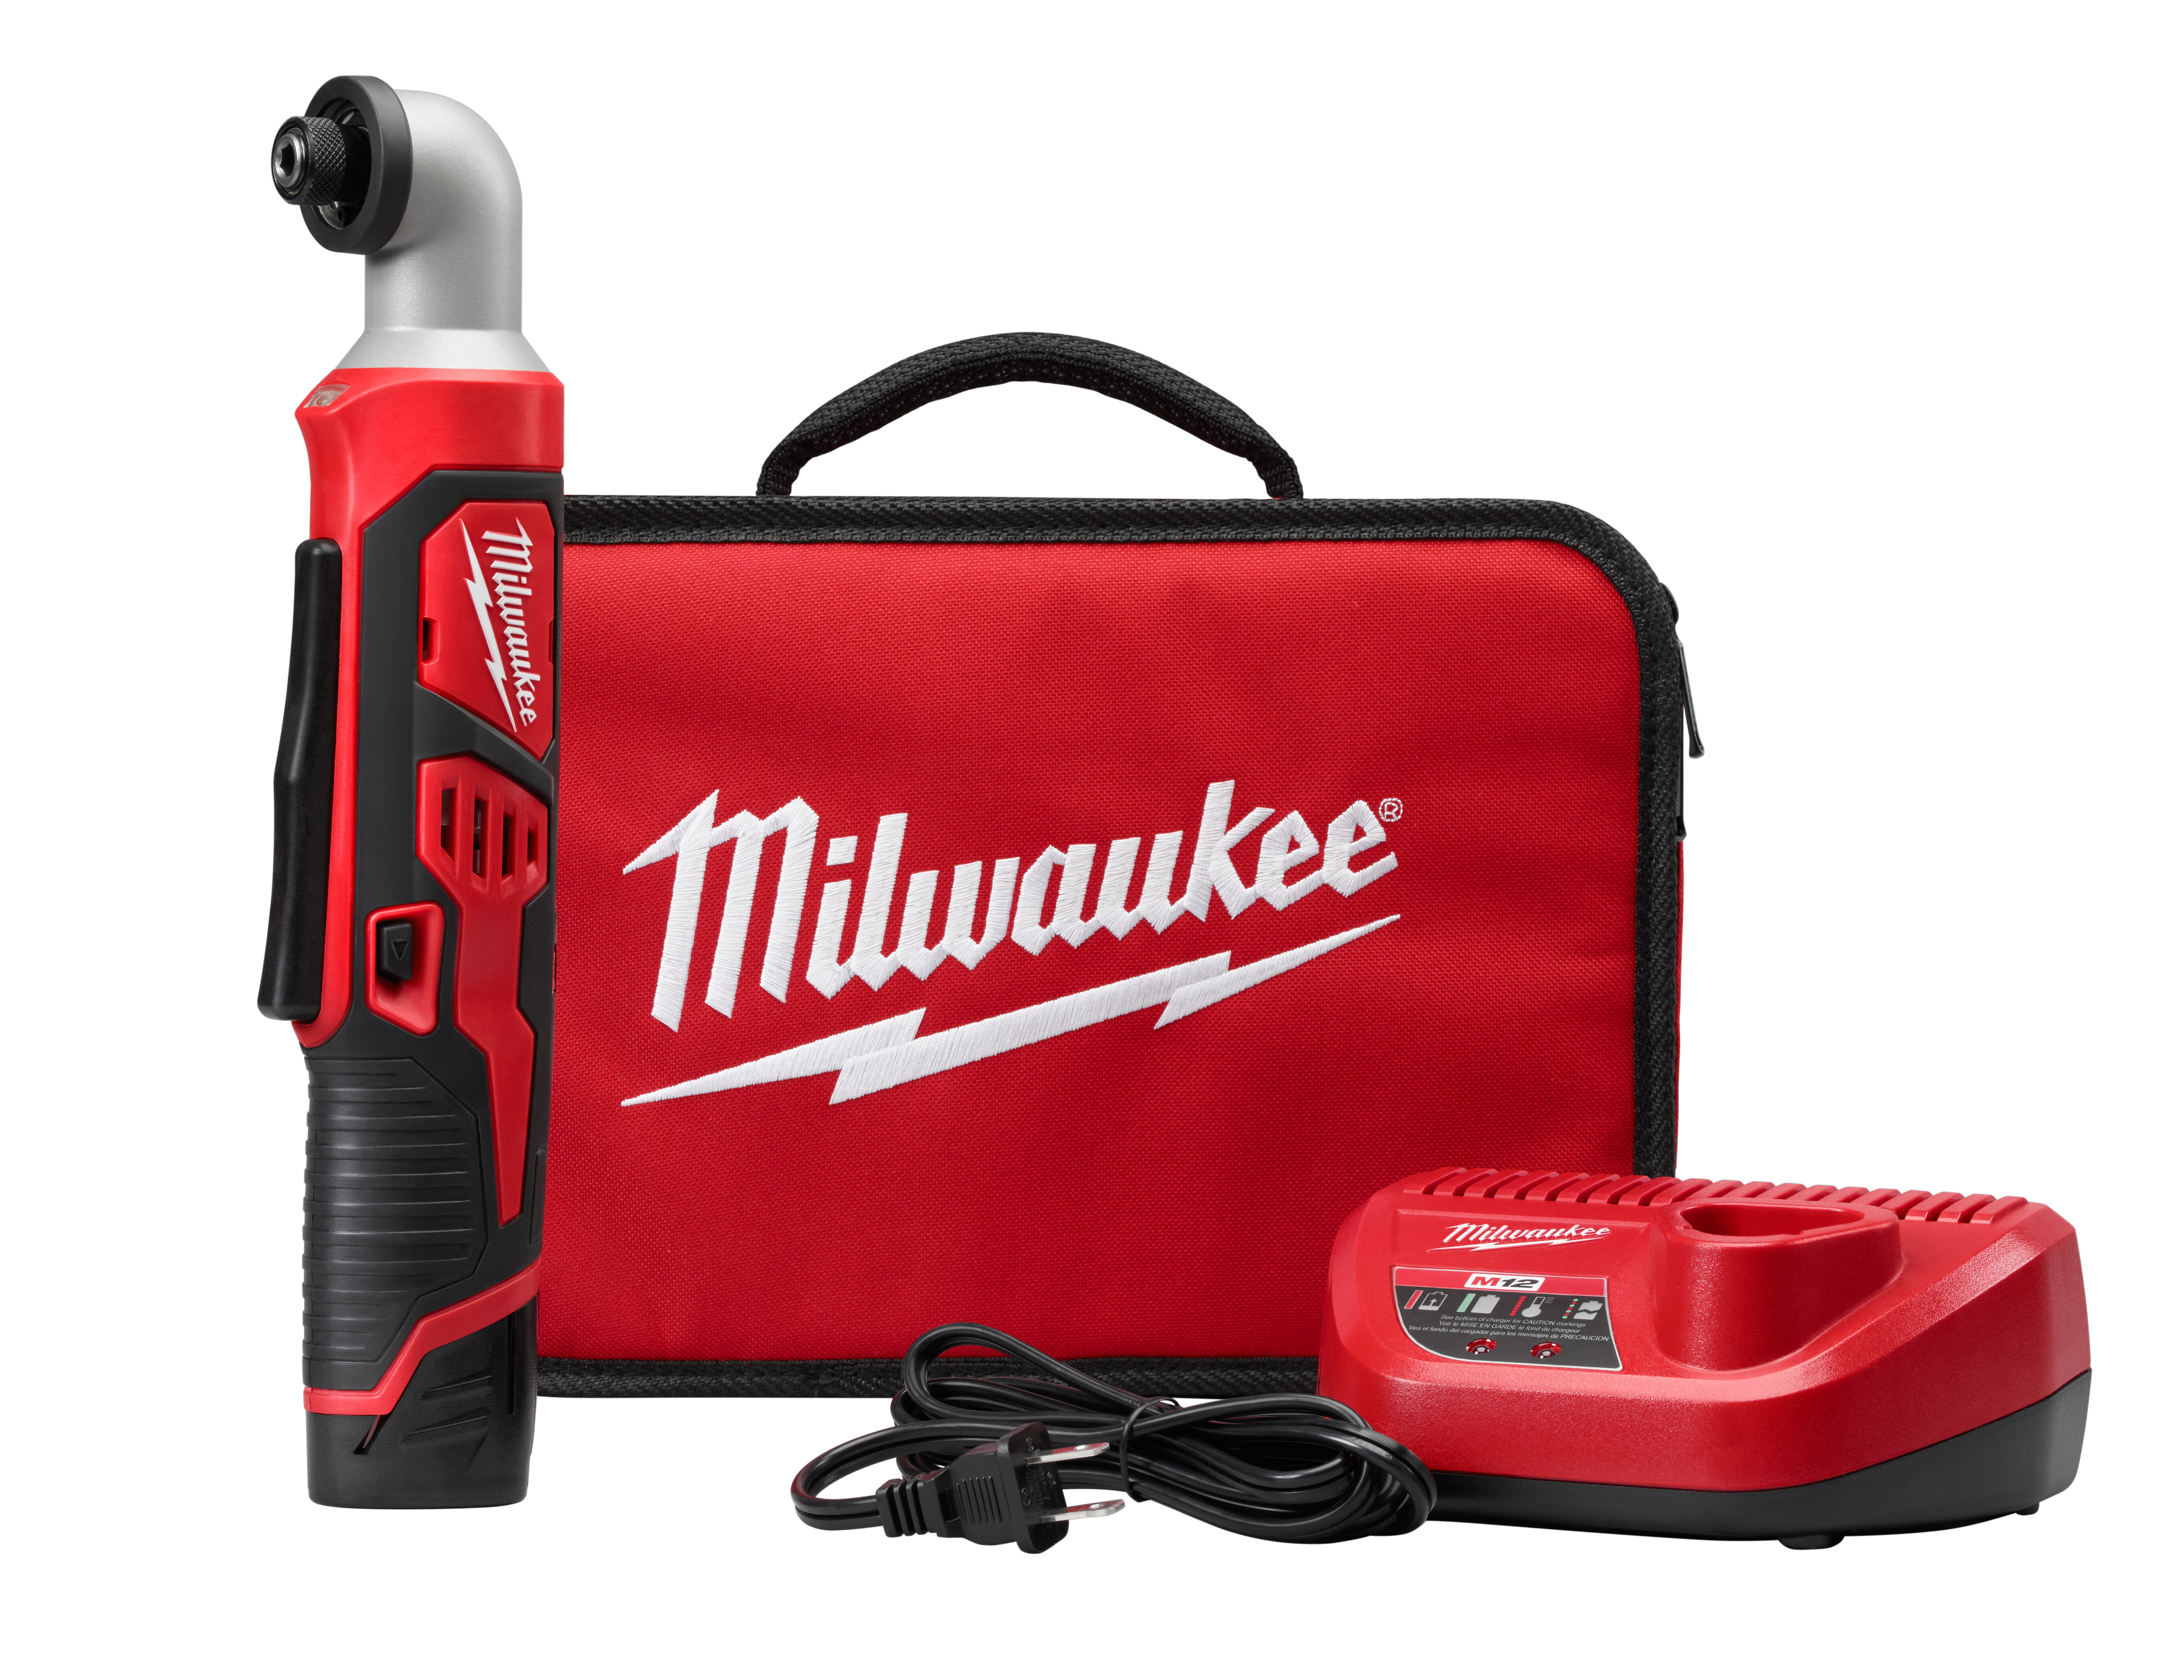 Milwaukee® M12™ 2467-21 Right Angle Cordless Impact Driver Kit, 1/4 in Hex Drive, 0 to 3300 bpm, 600 in-lb Torque, 12 VAC, 12.1 in OAL